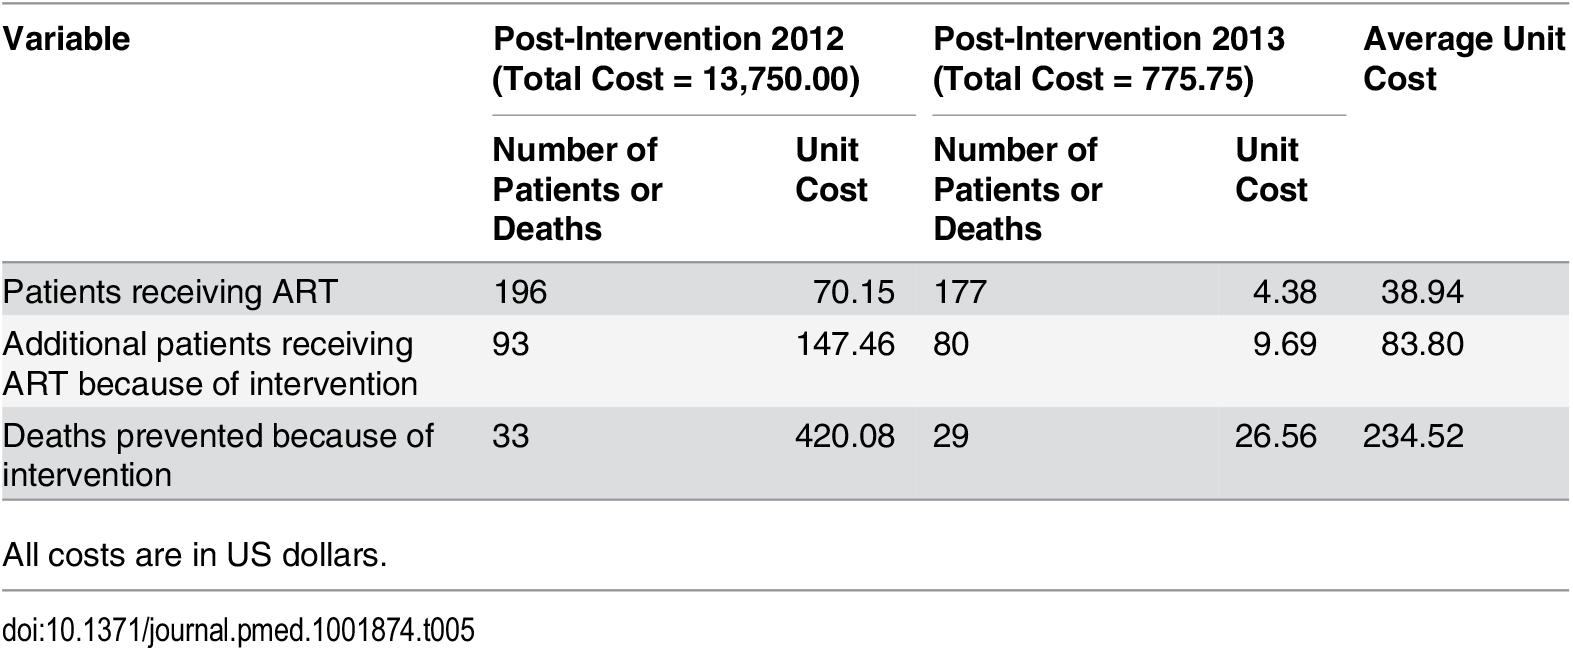 Unit cost per patient receiving ART, unit cost per additional patient receiving ART because of the intervention, and unit cost per death prevented because of intervention in Guangxi, China, 2012–2014.